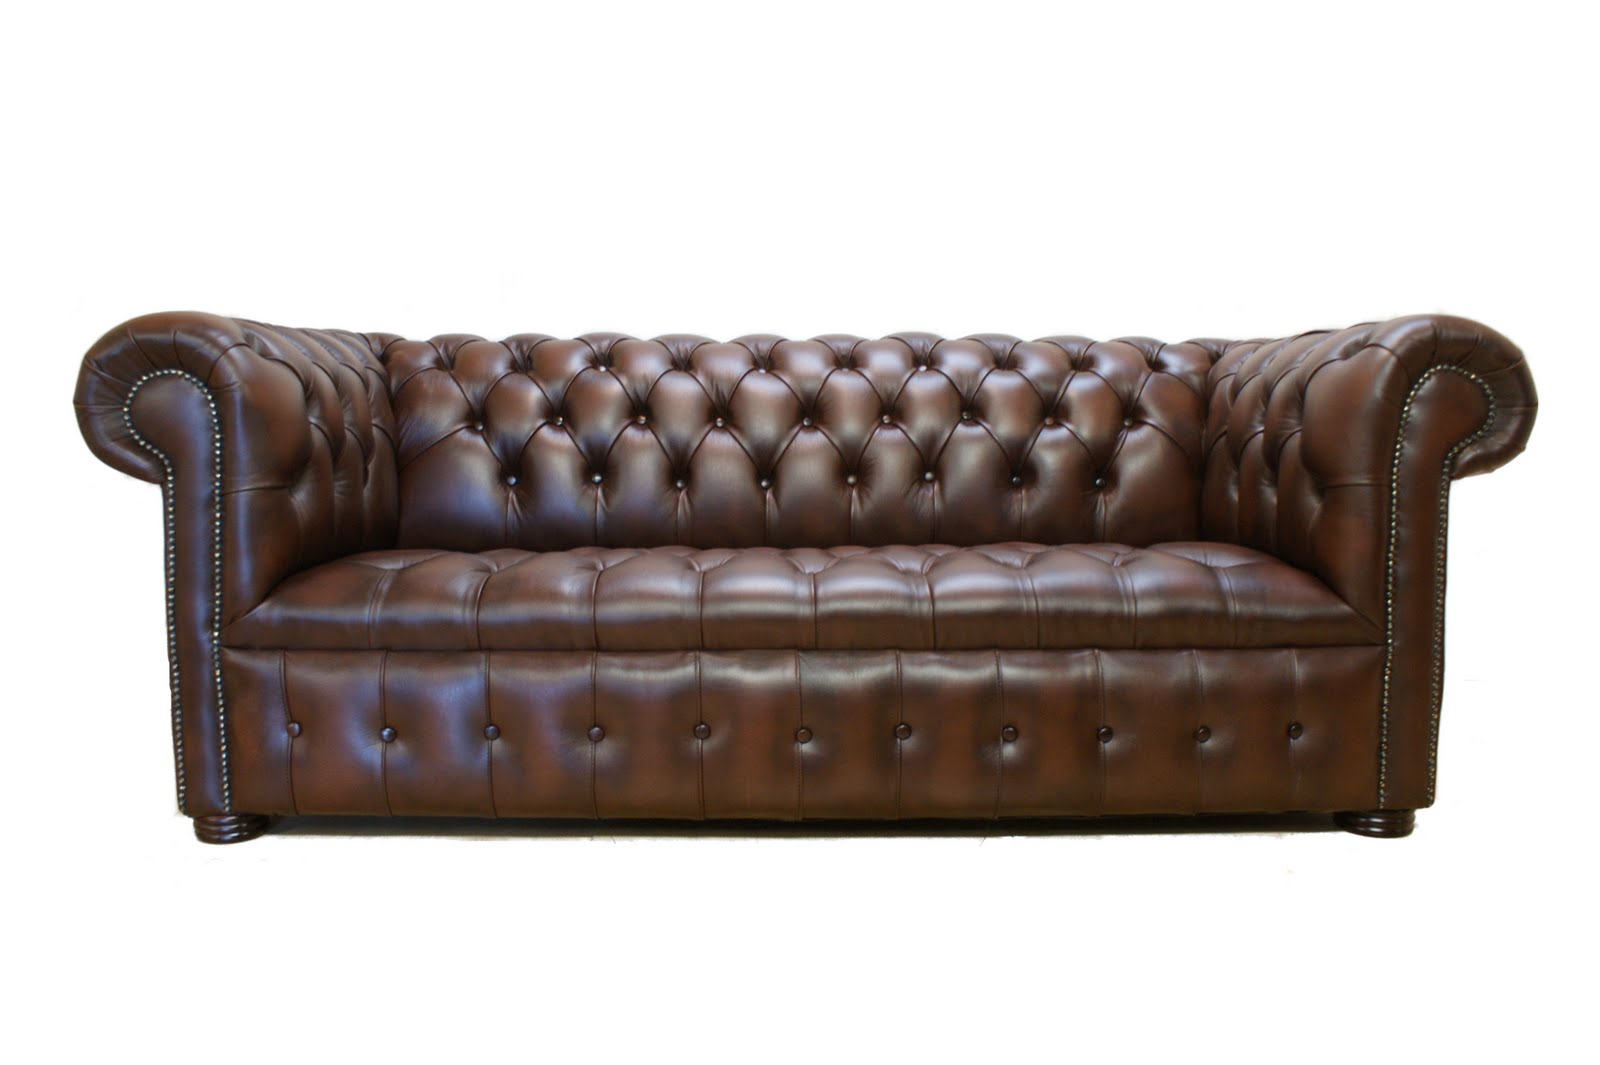 Chesterfield Sofas Chesterfield Sofa Fabric